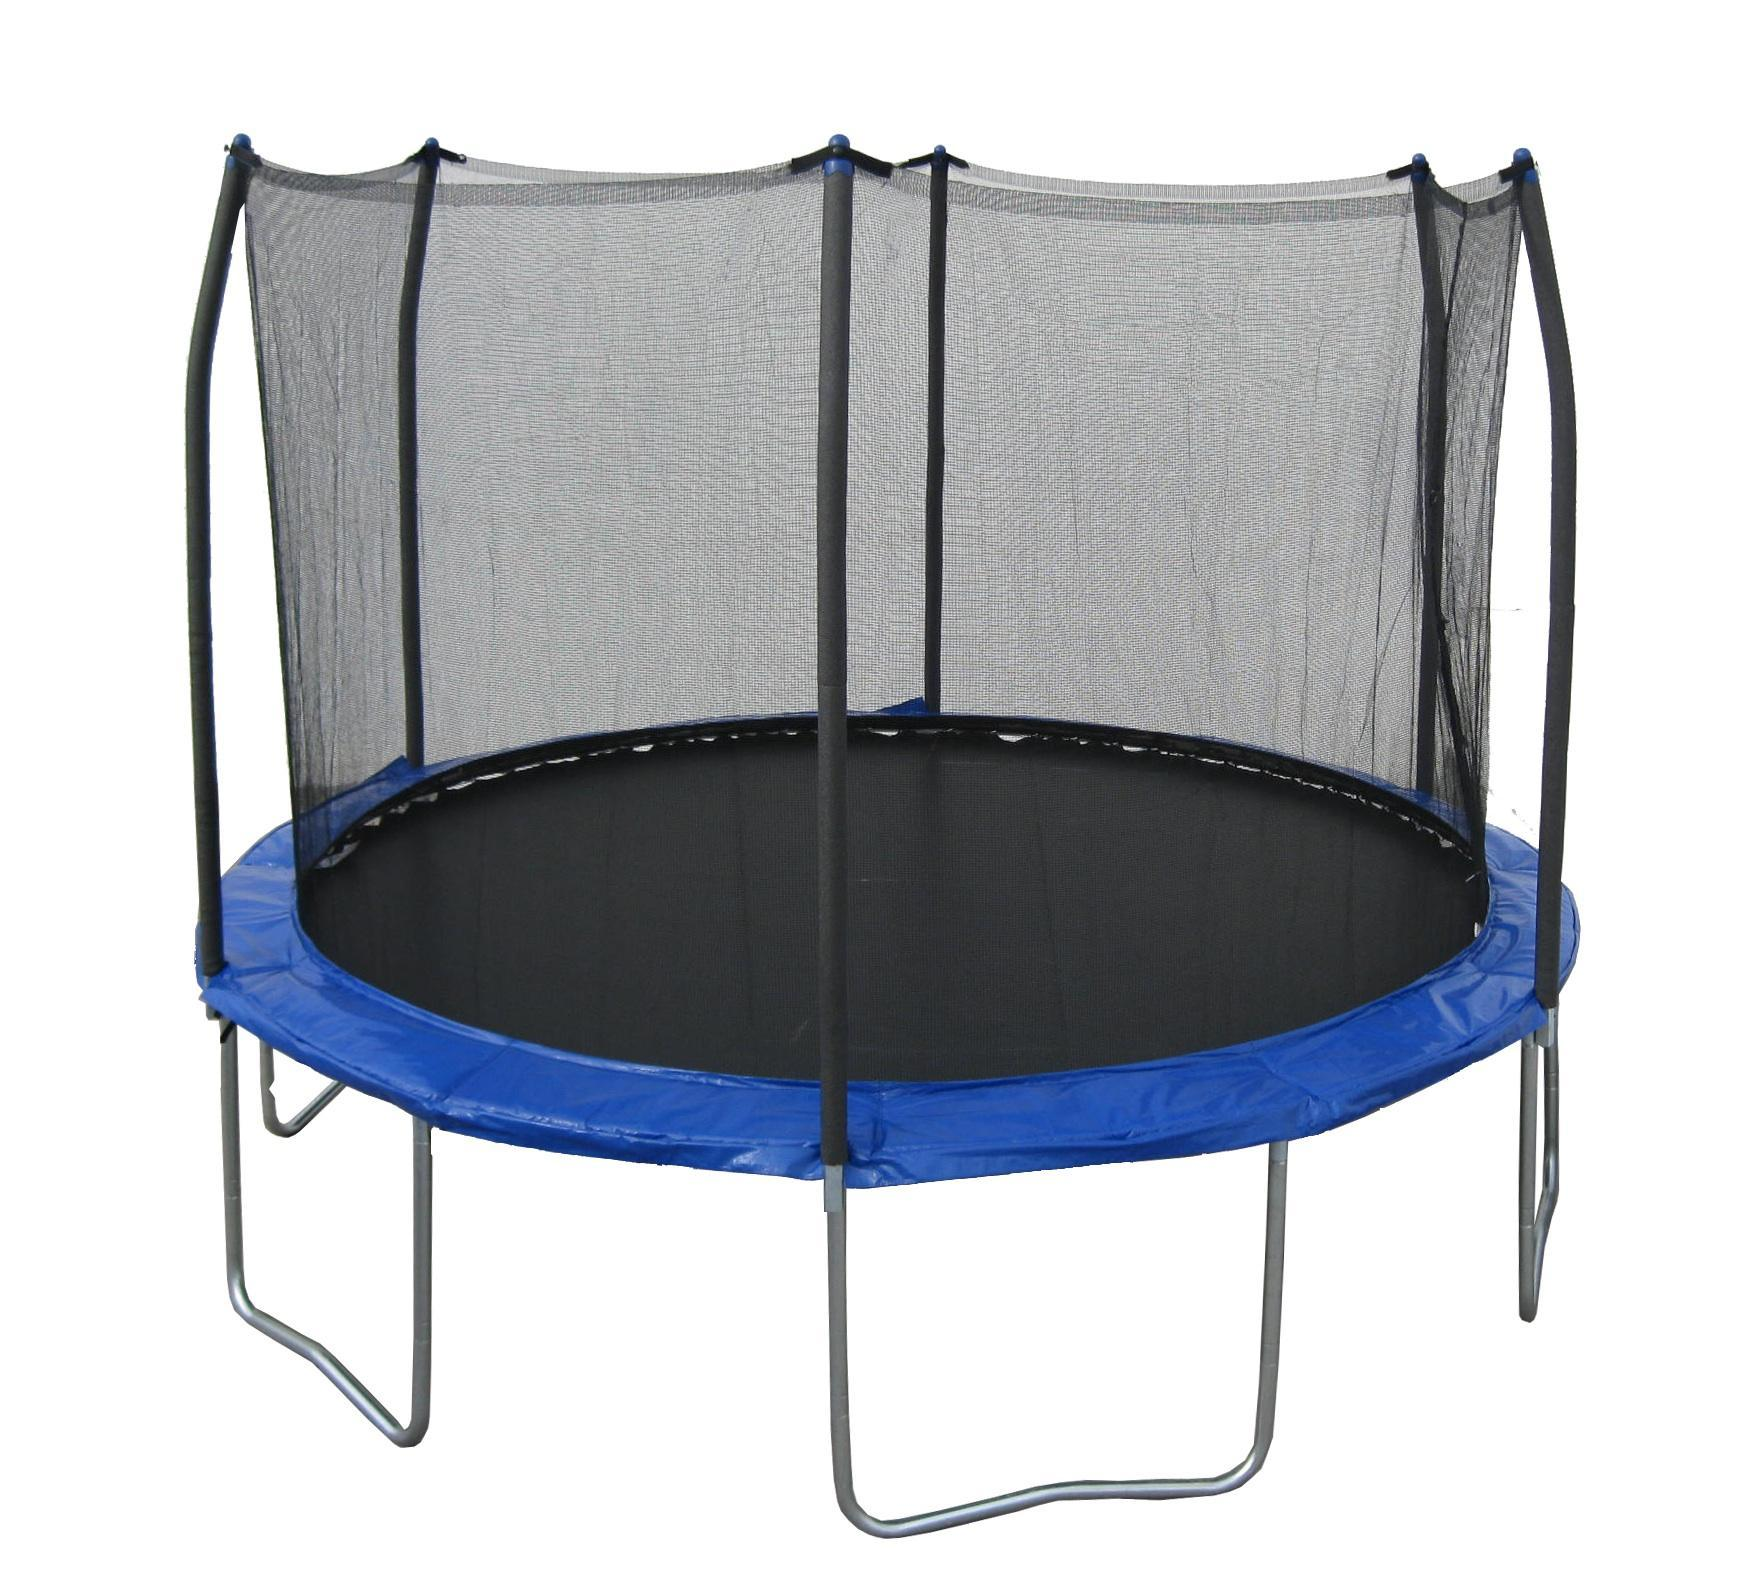 You're on a trampoline! What do you do?